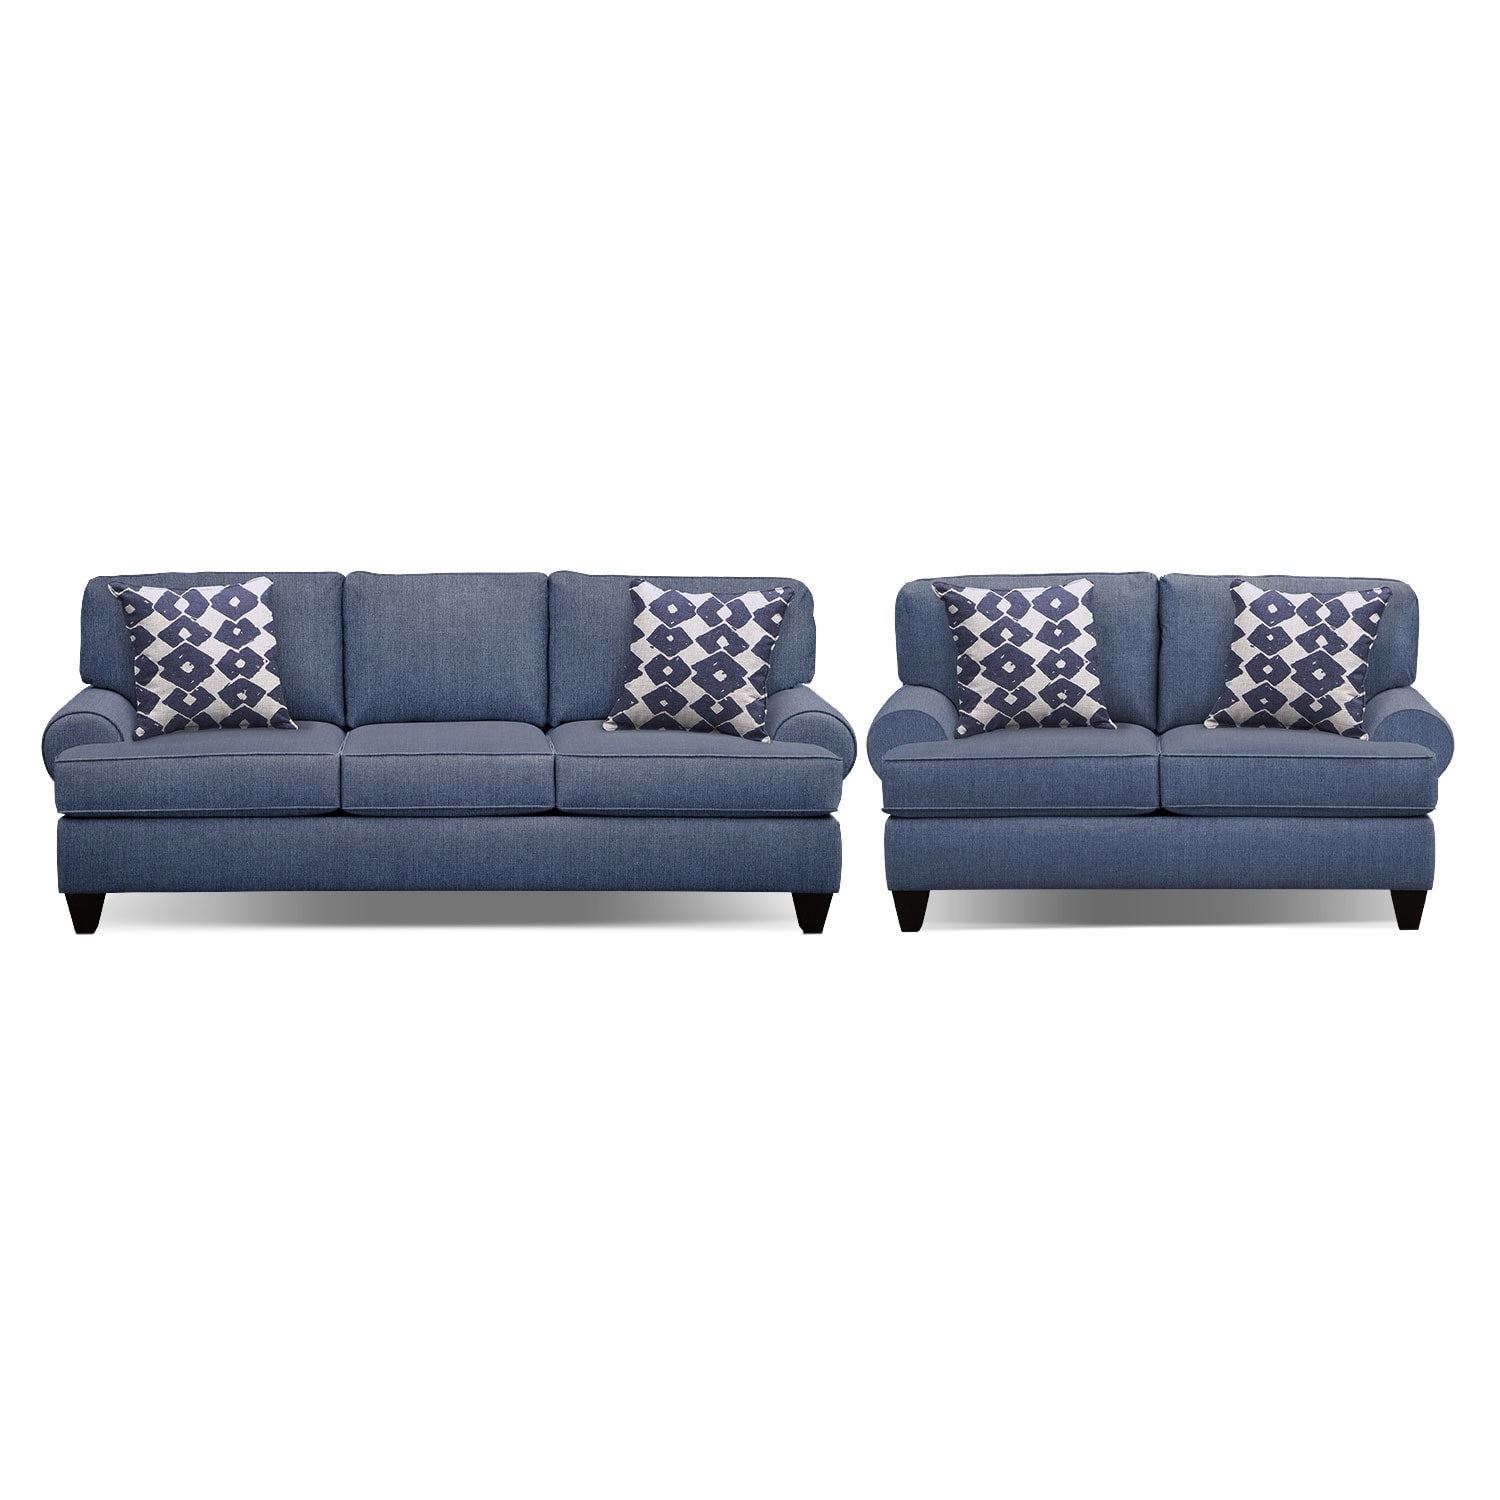 Bailey Blue 91 Innerspring Sleeper Sofa And 67 Sofa Set Value City Furniture